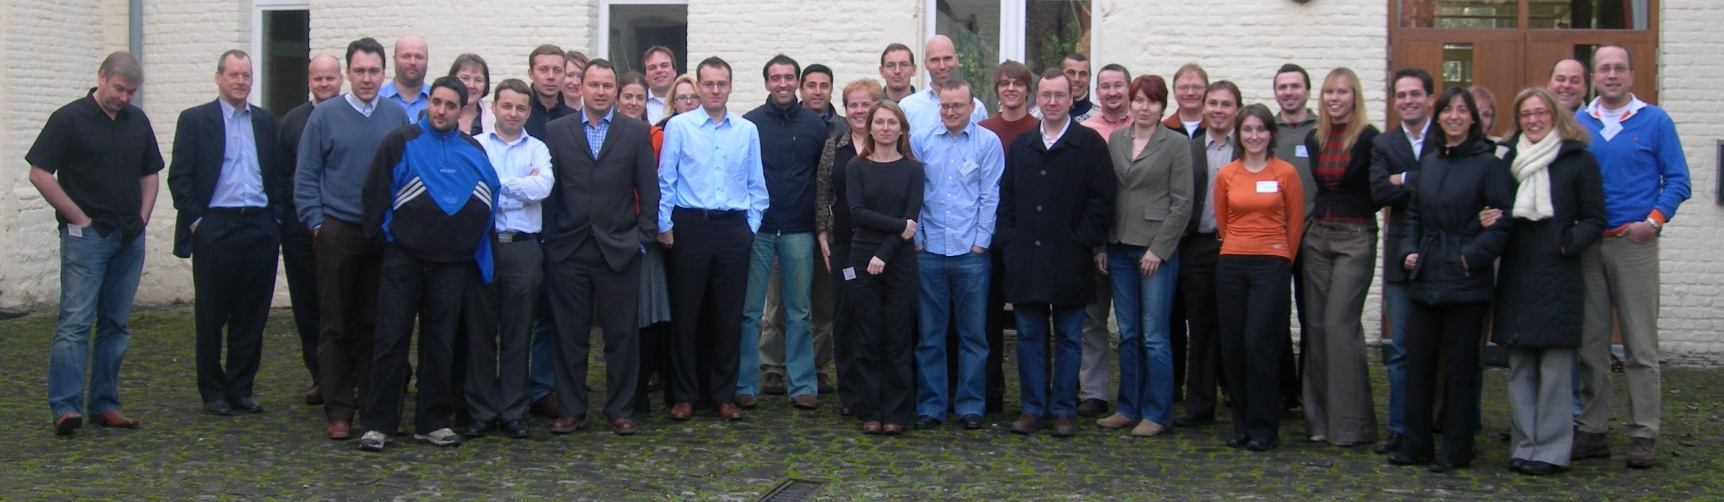 Group picture from Tervuren